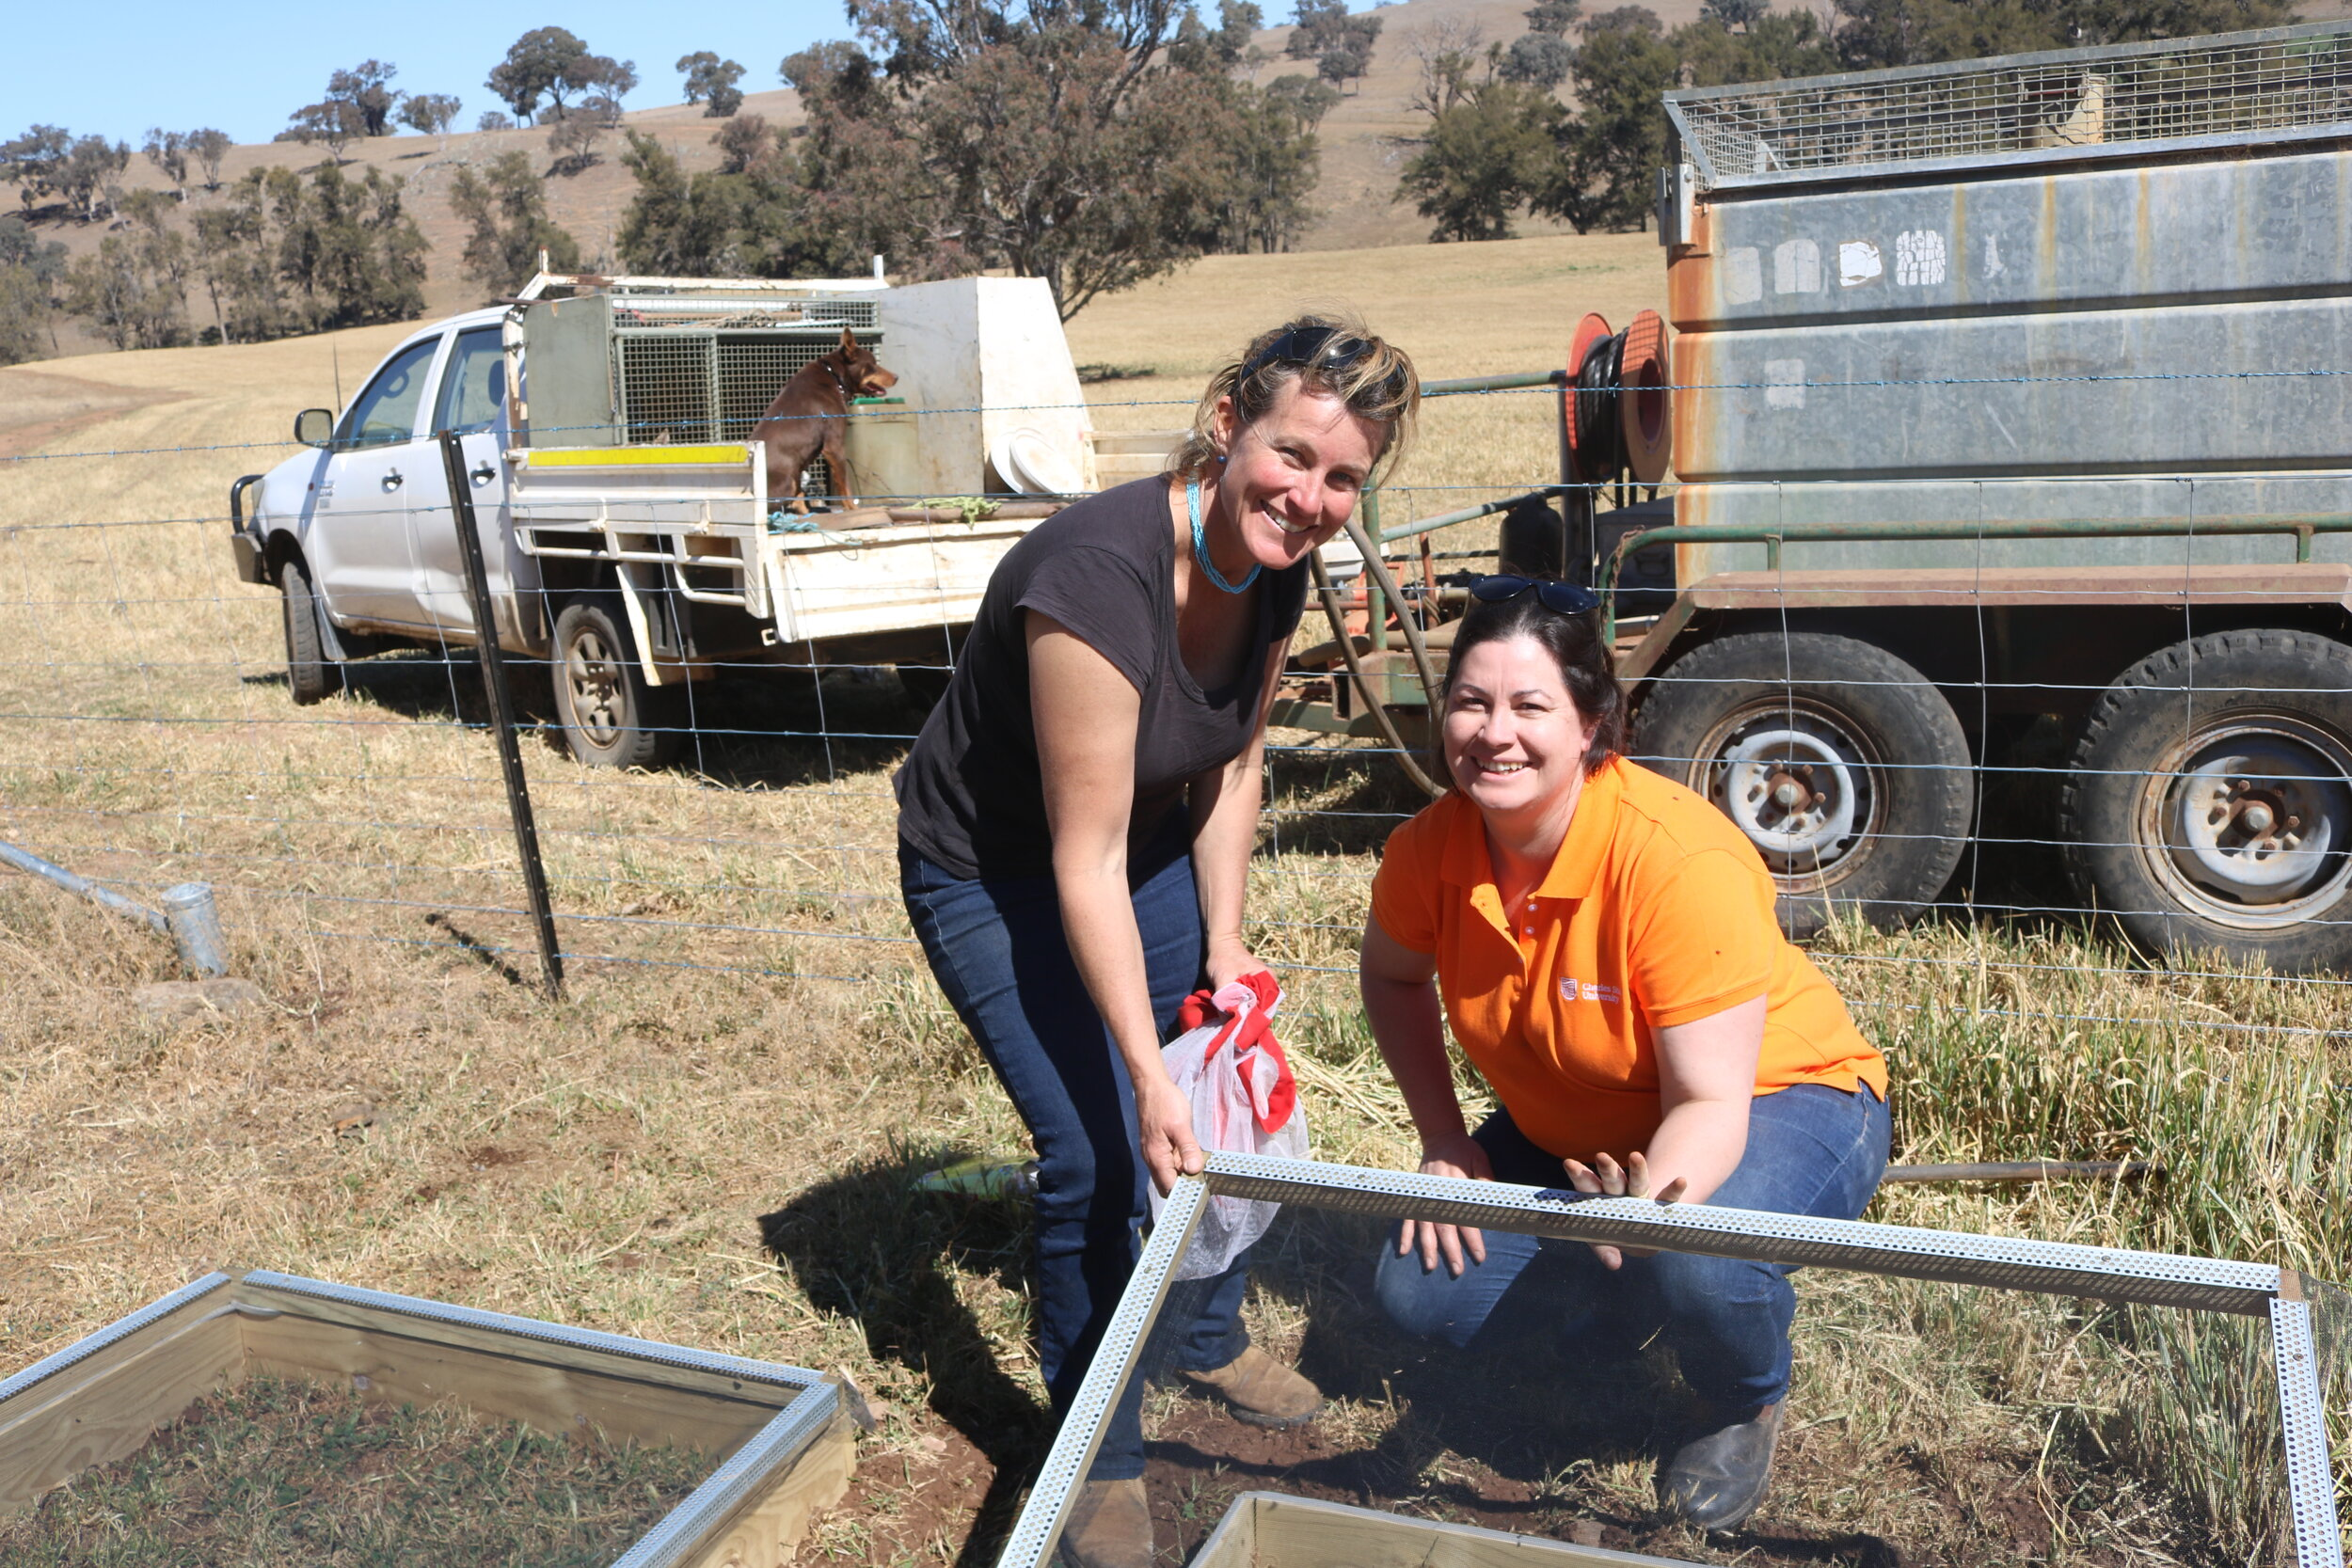 Landcare coordinator and producer Sally Kirby and DBEE's Annie Johnson setting up an on-farm dung beetle nursery on Sally's property at Molong, NSW